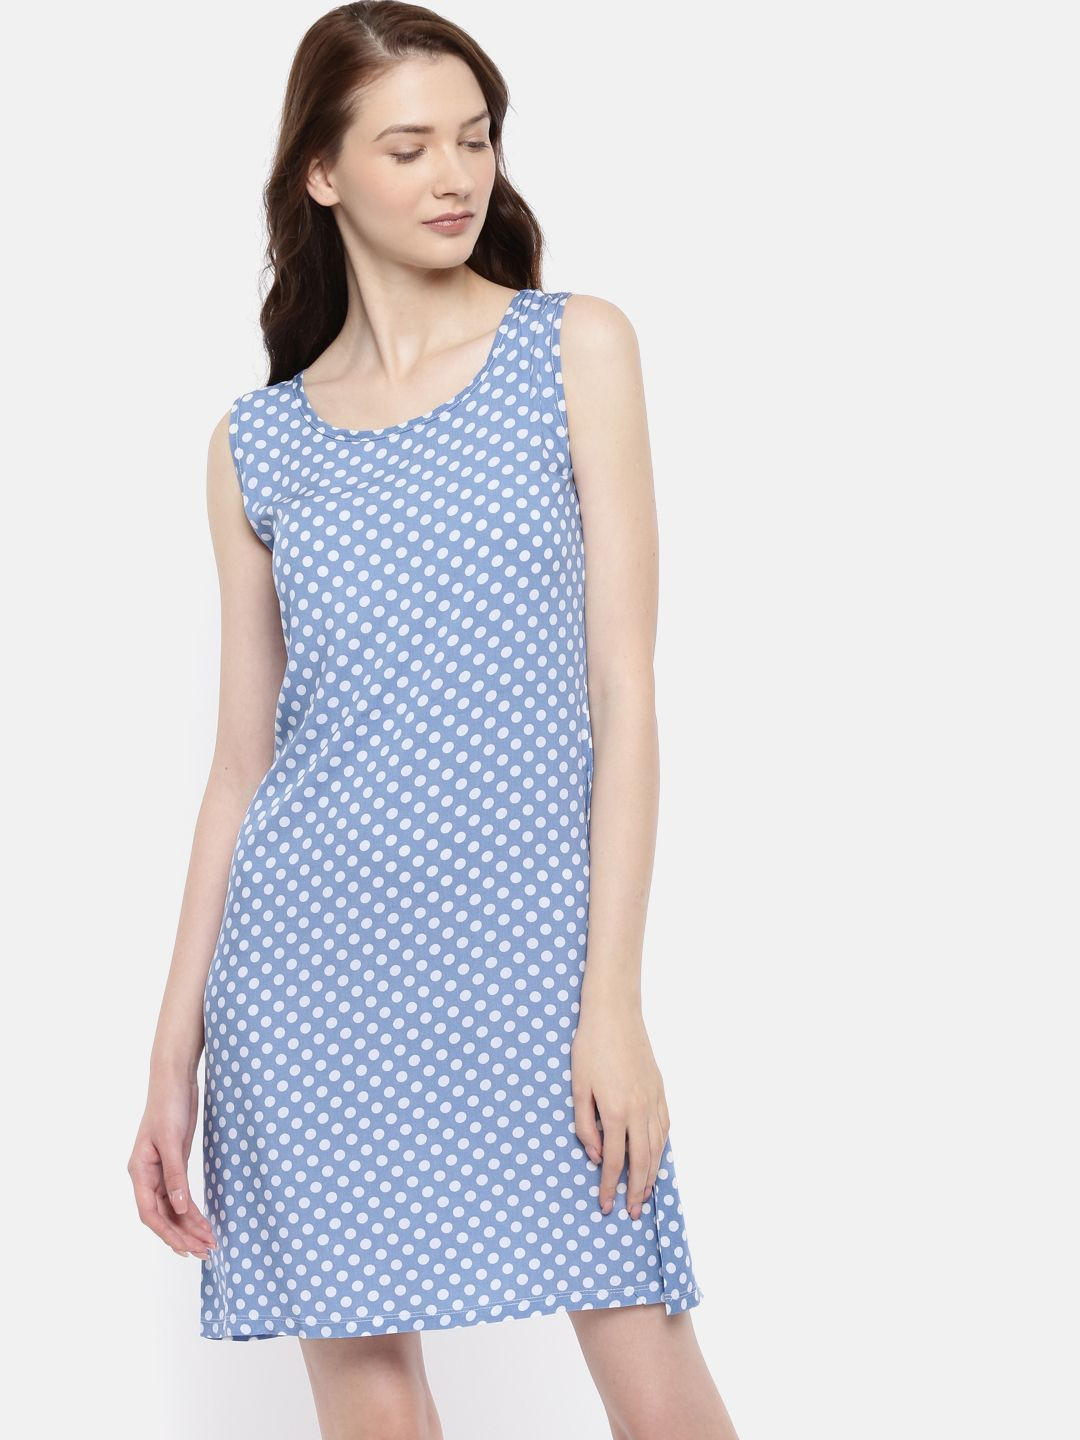 The Blue & White Printed A-Line Dress